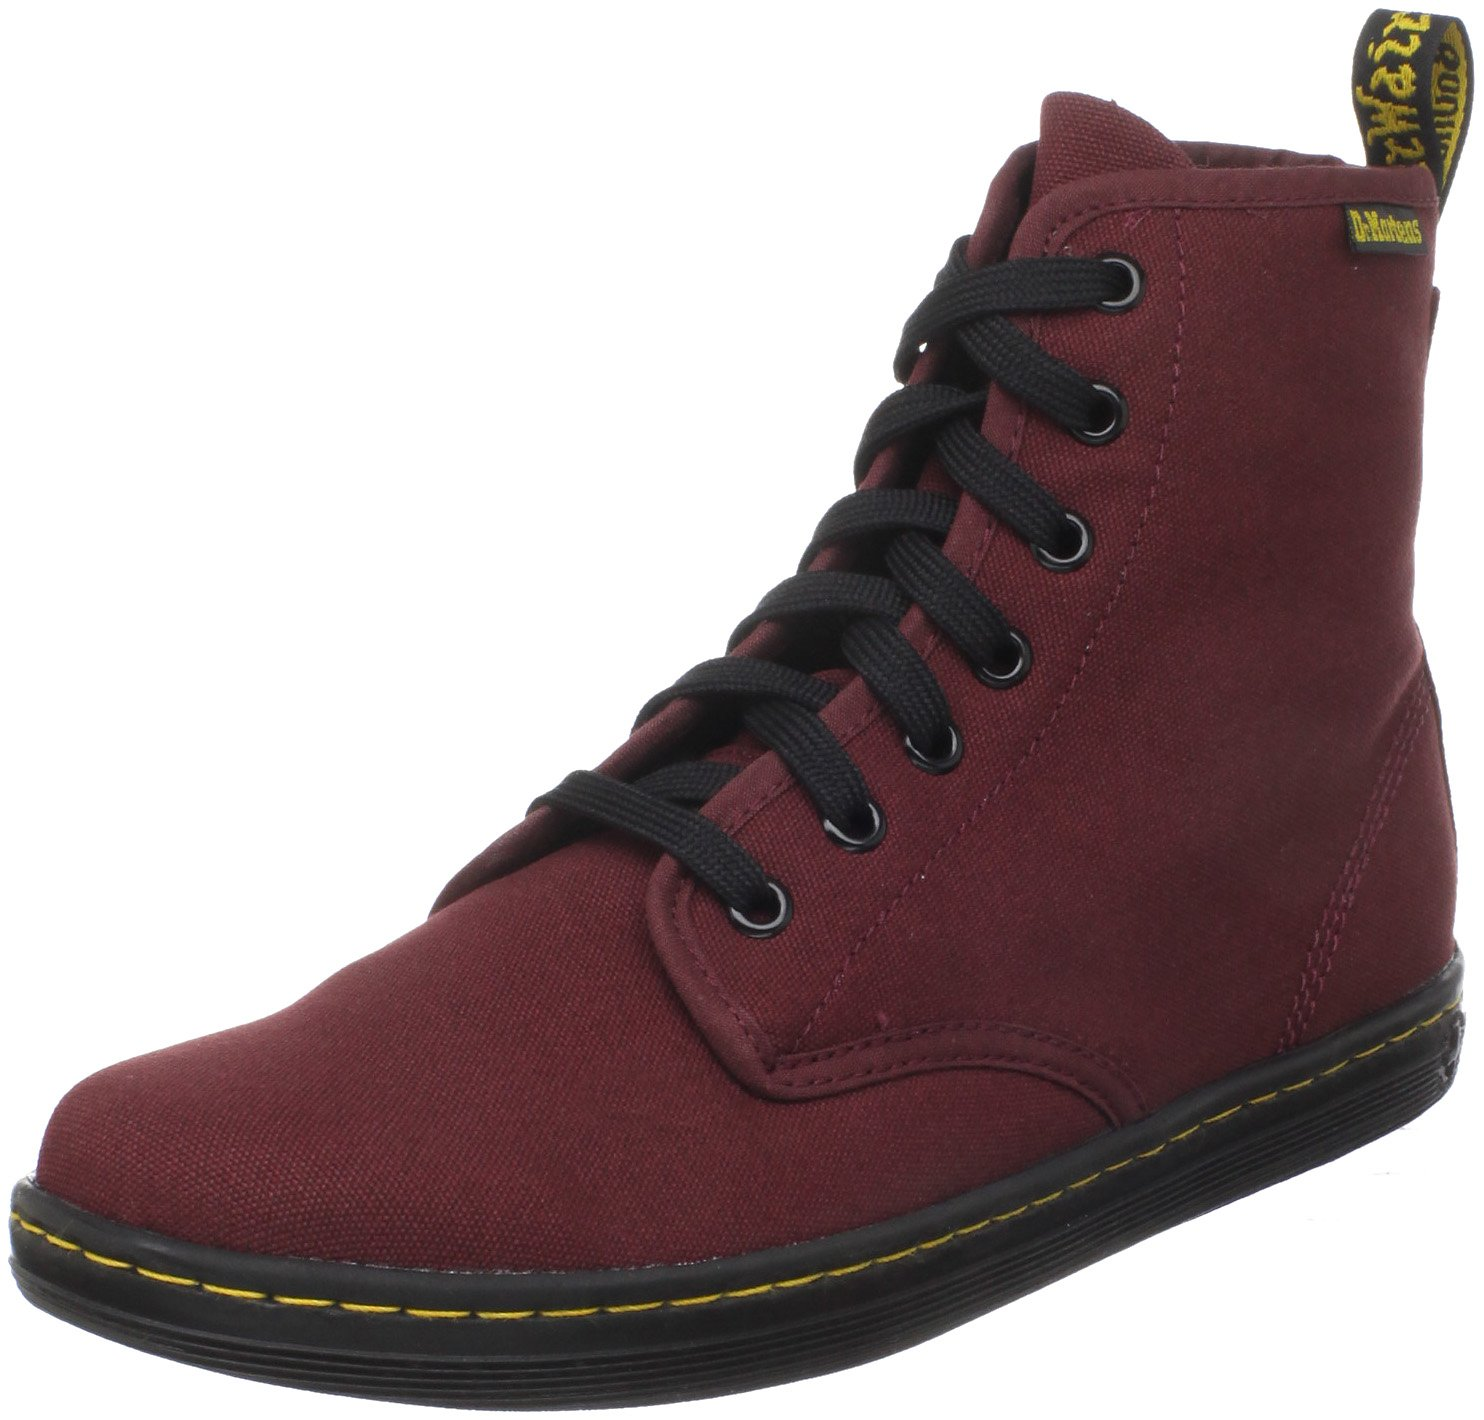 Dr. Martens Women's Shoreditch Boot,Cherry Red Rouge,5 UK (US Women's 7 M)